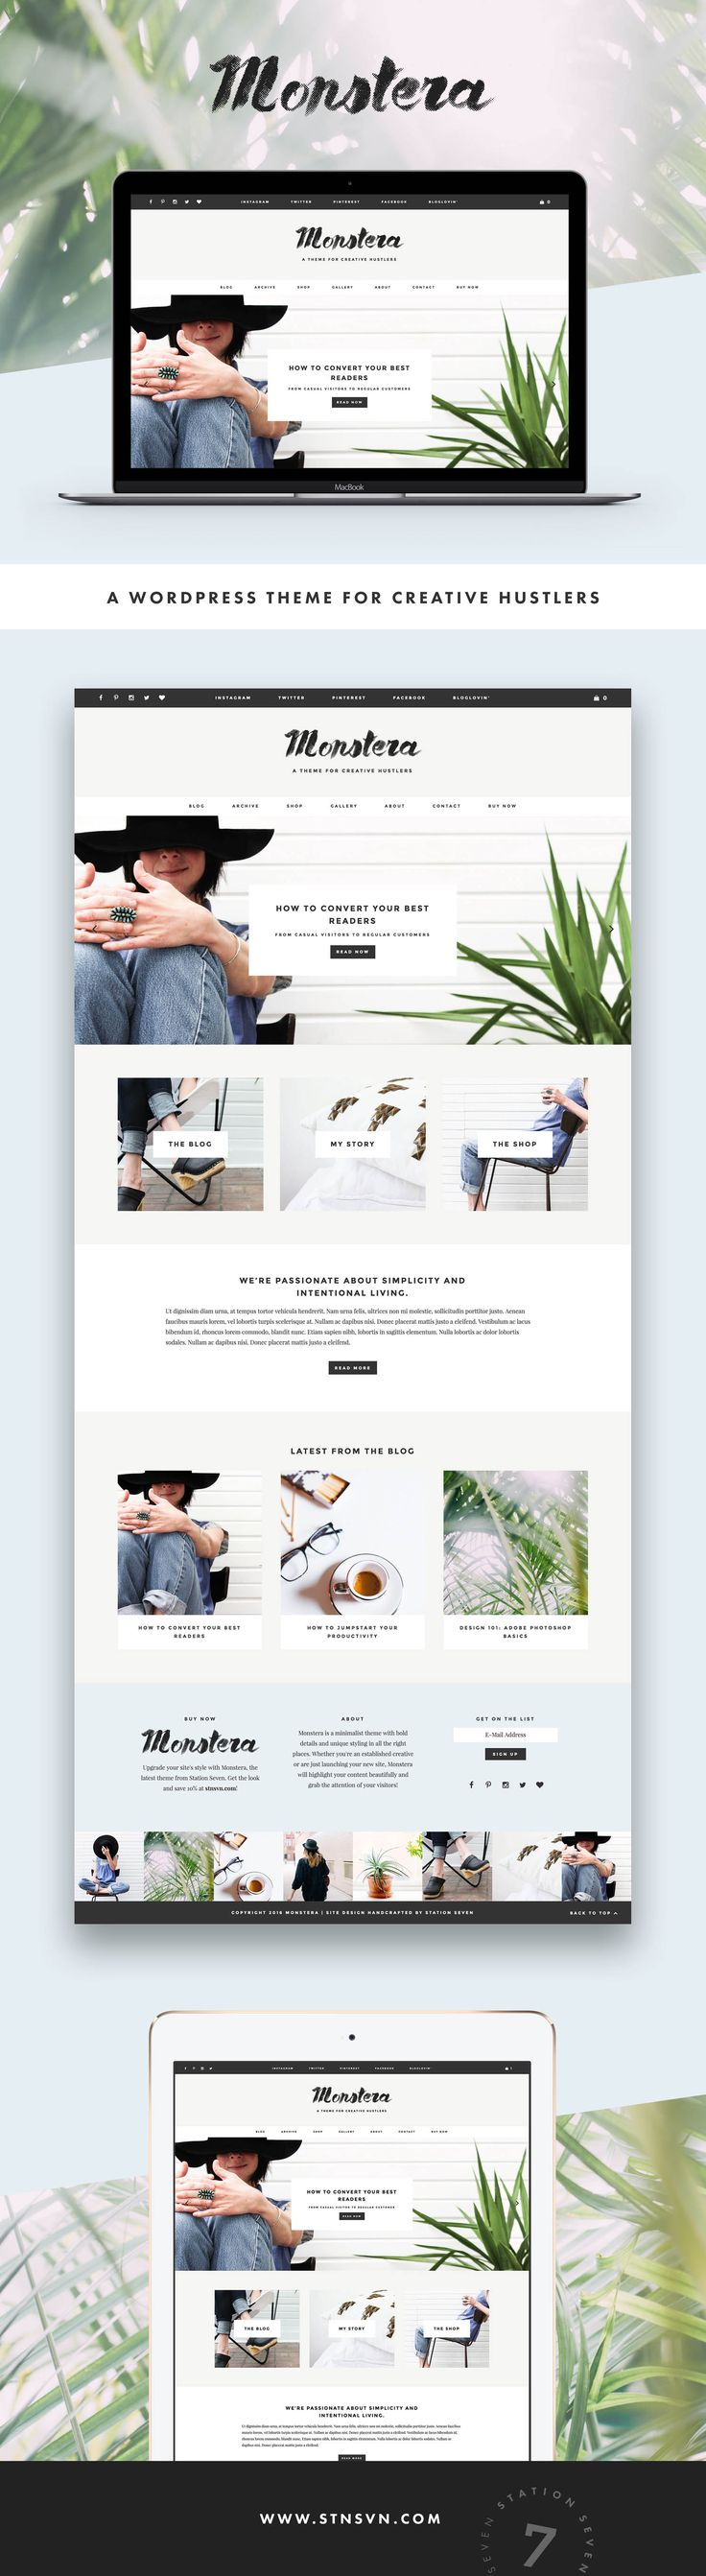 Monstera - Premium WordPress Theme from Station Seven